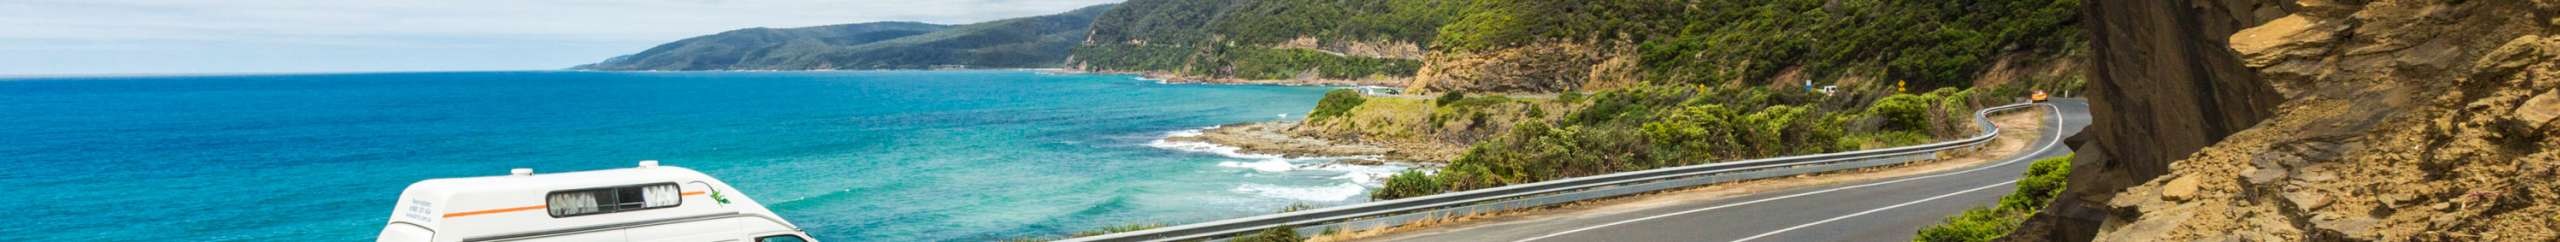 Britz Voyager coastal road drive view